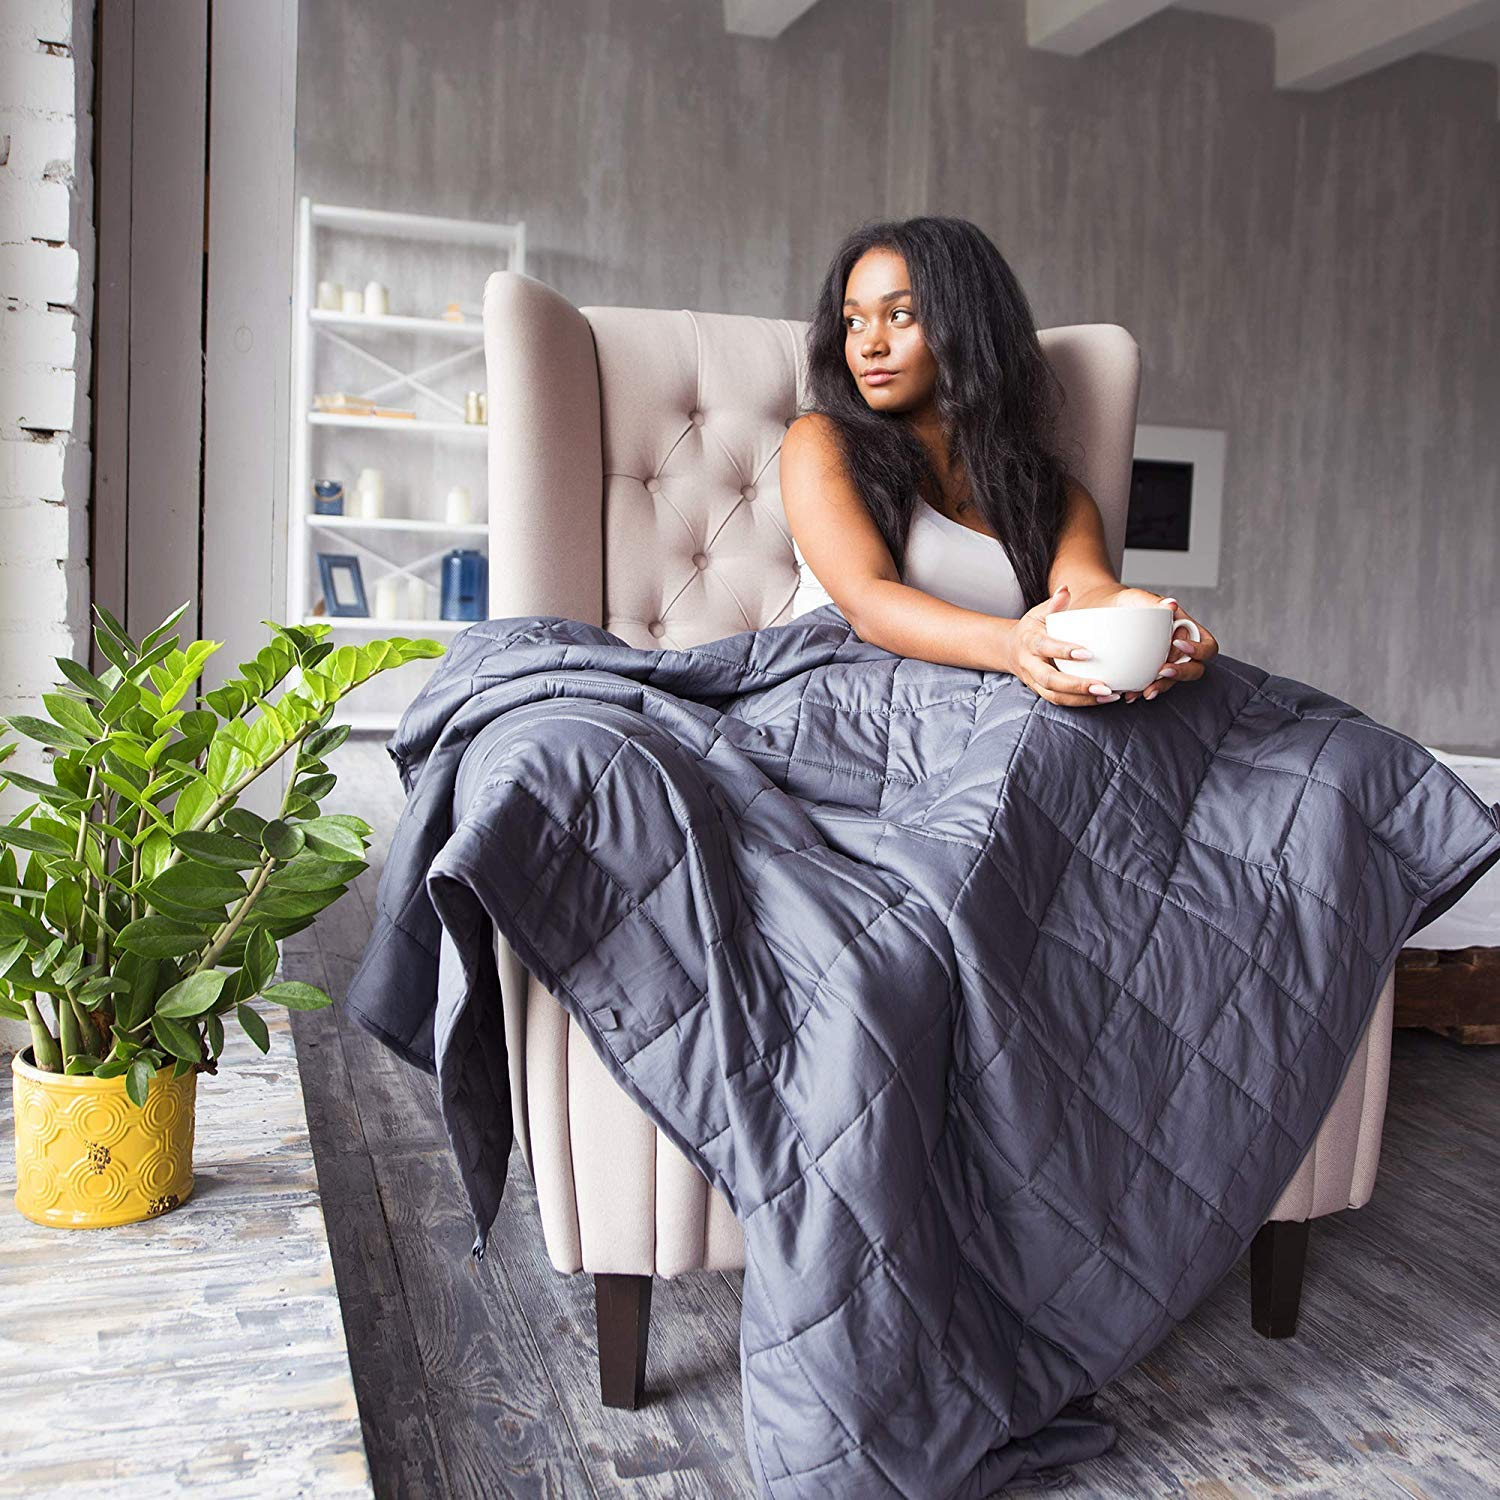 COCOBELA Weighted Blanket for Adult and Kids, 15 lbs 60''x 80'', Breathable Cotton and Premium Glass Beads (Dark Grey) by COCOBELA (Image #7)